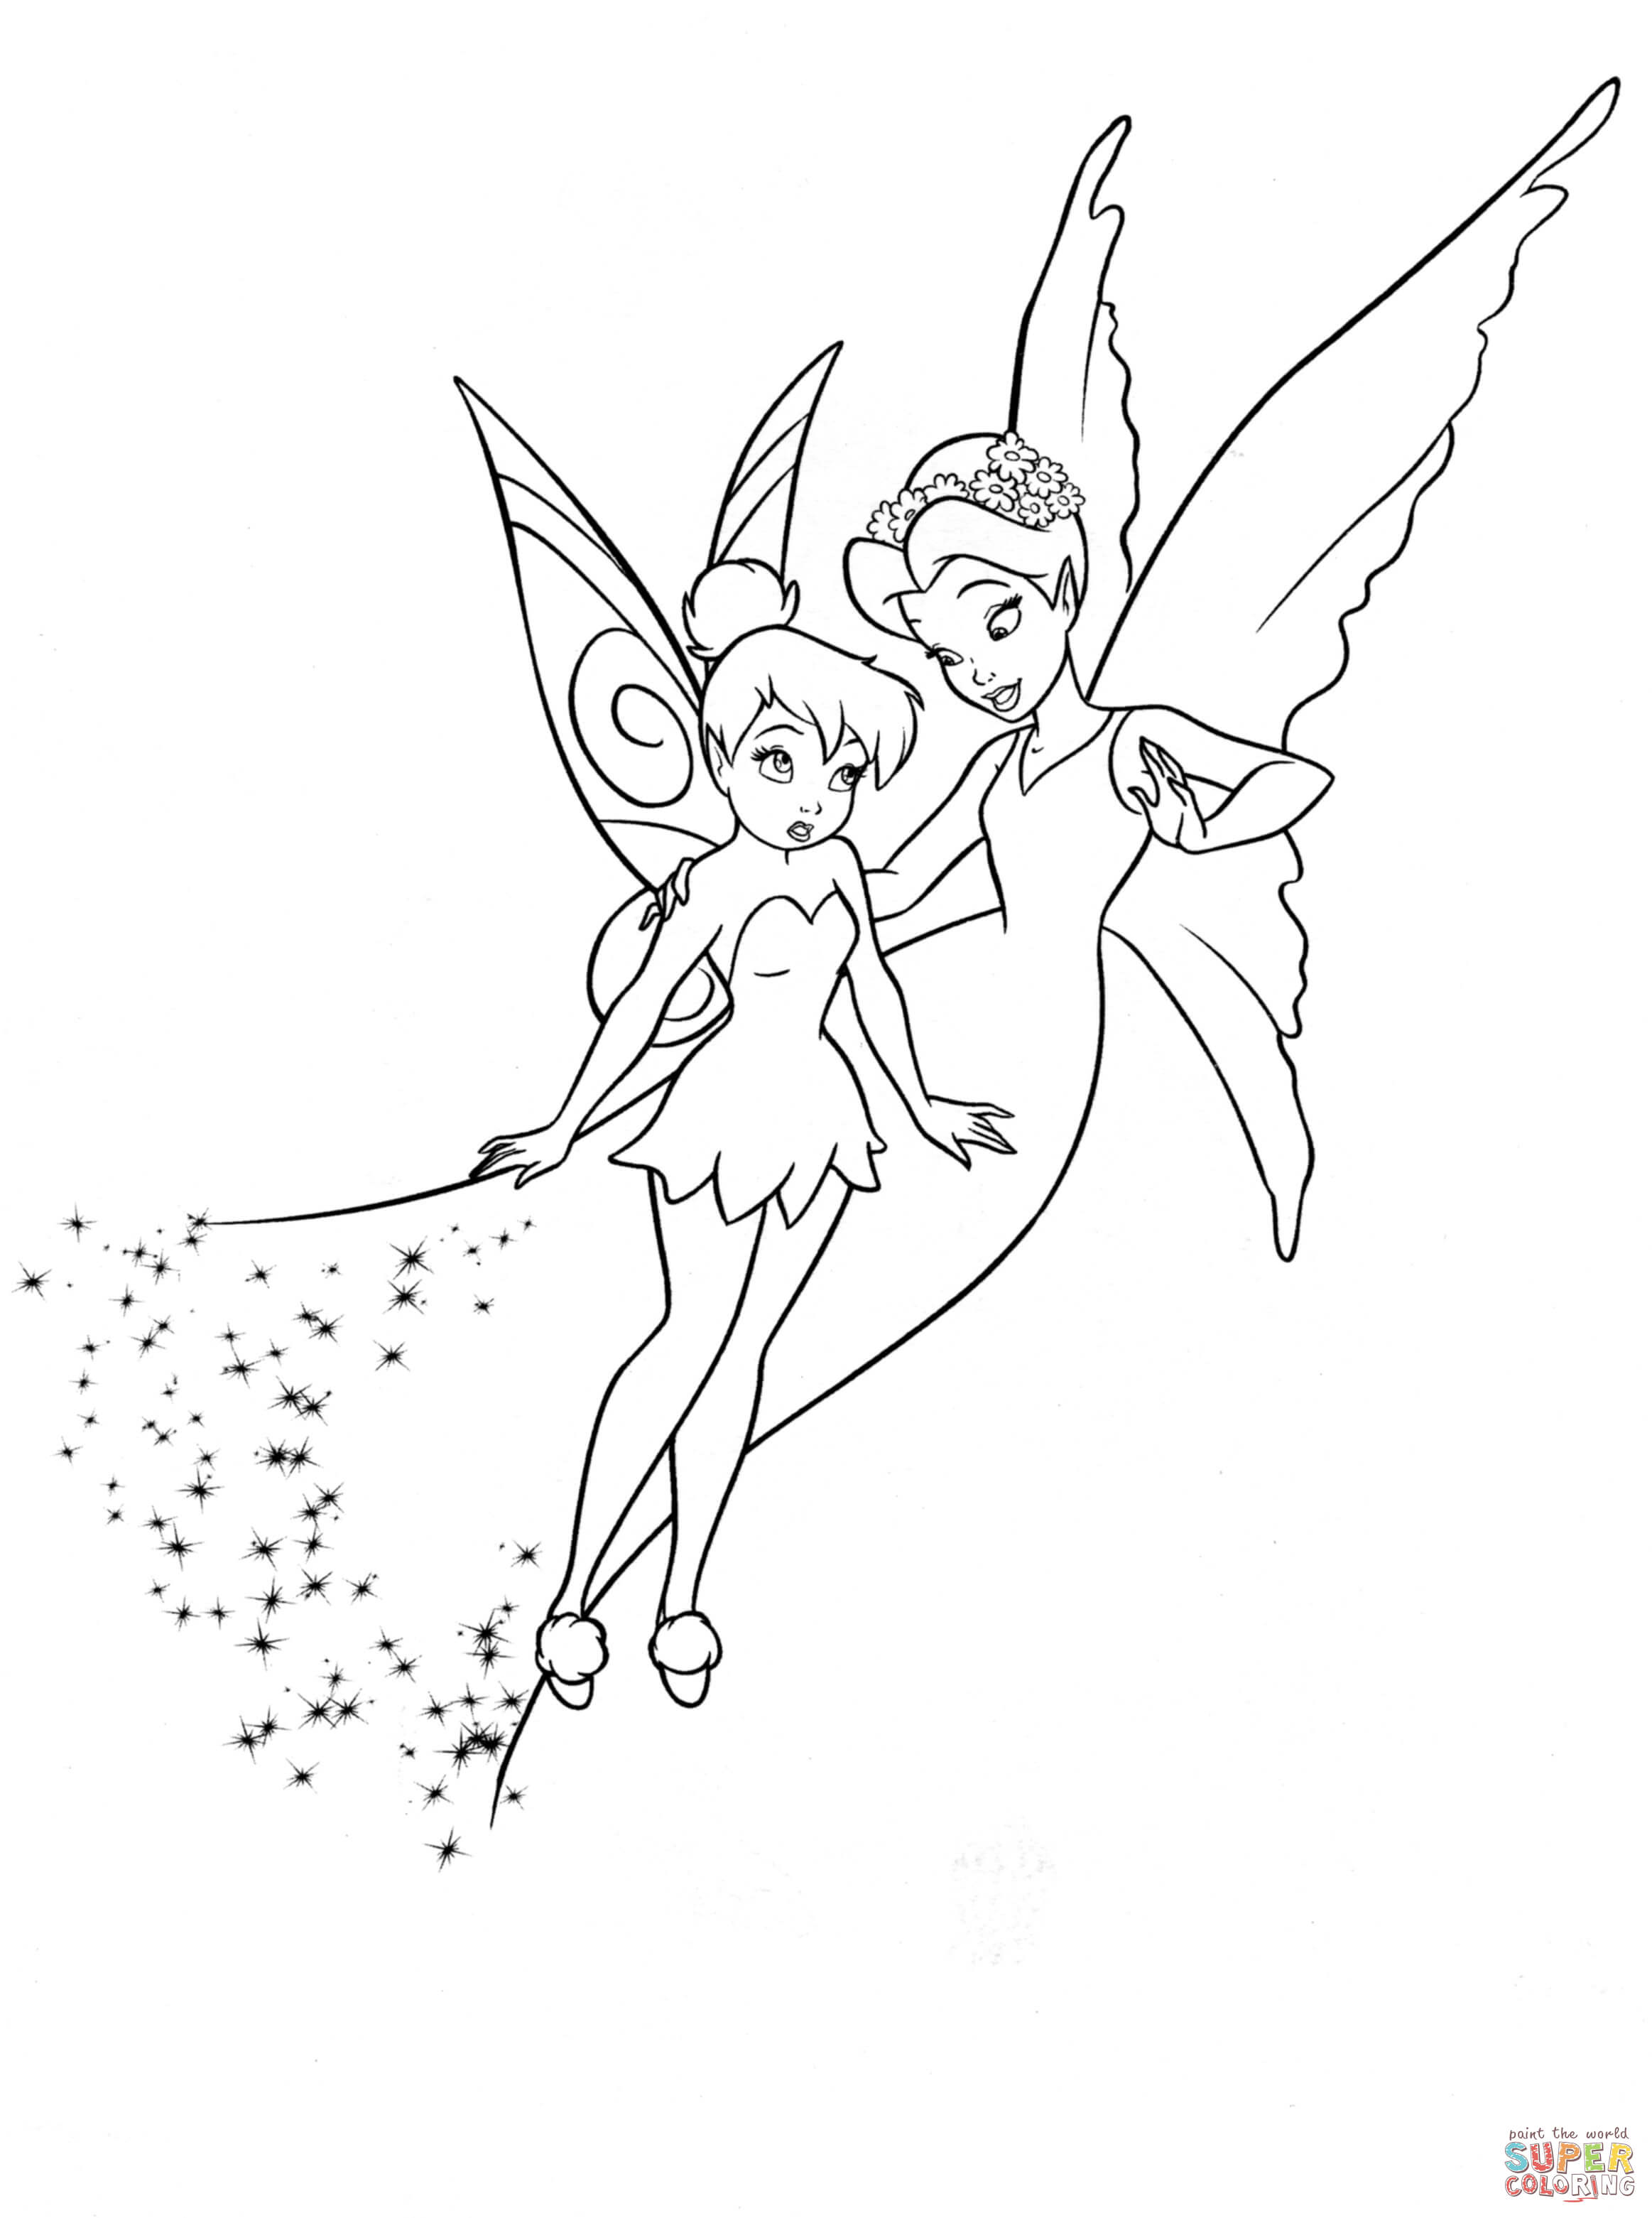 Shy Tinkerbell And Queen Clarion Coloring Page Free Printable Coloring Pages